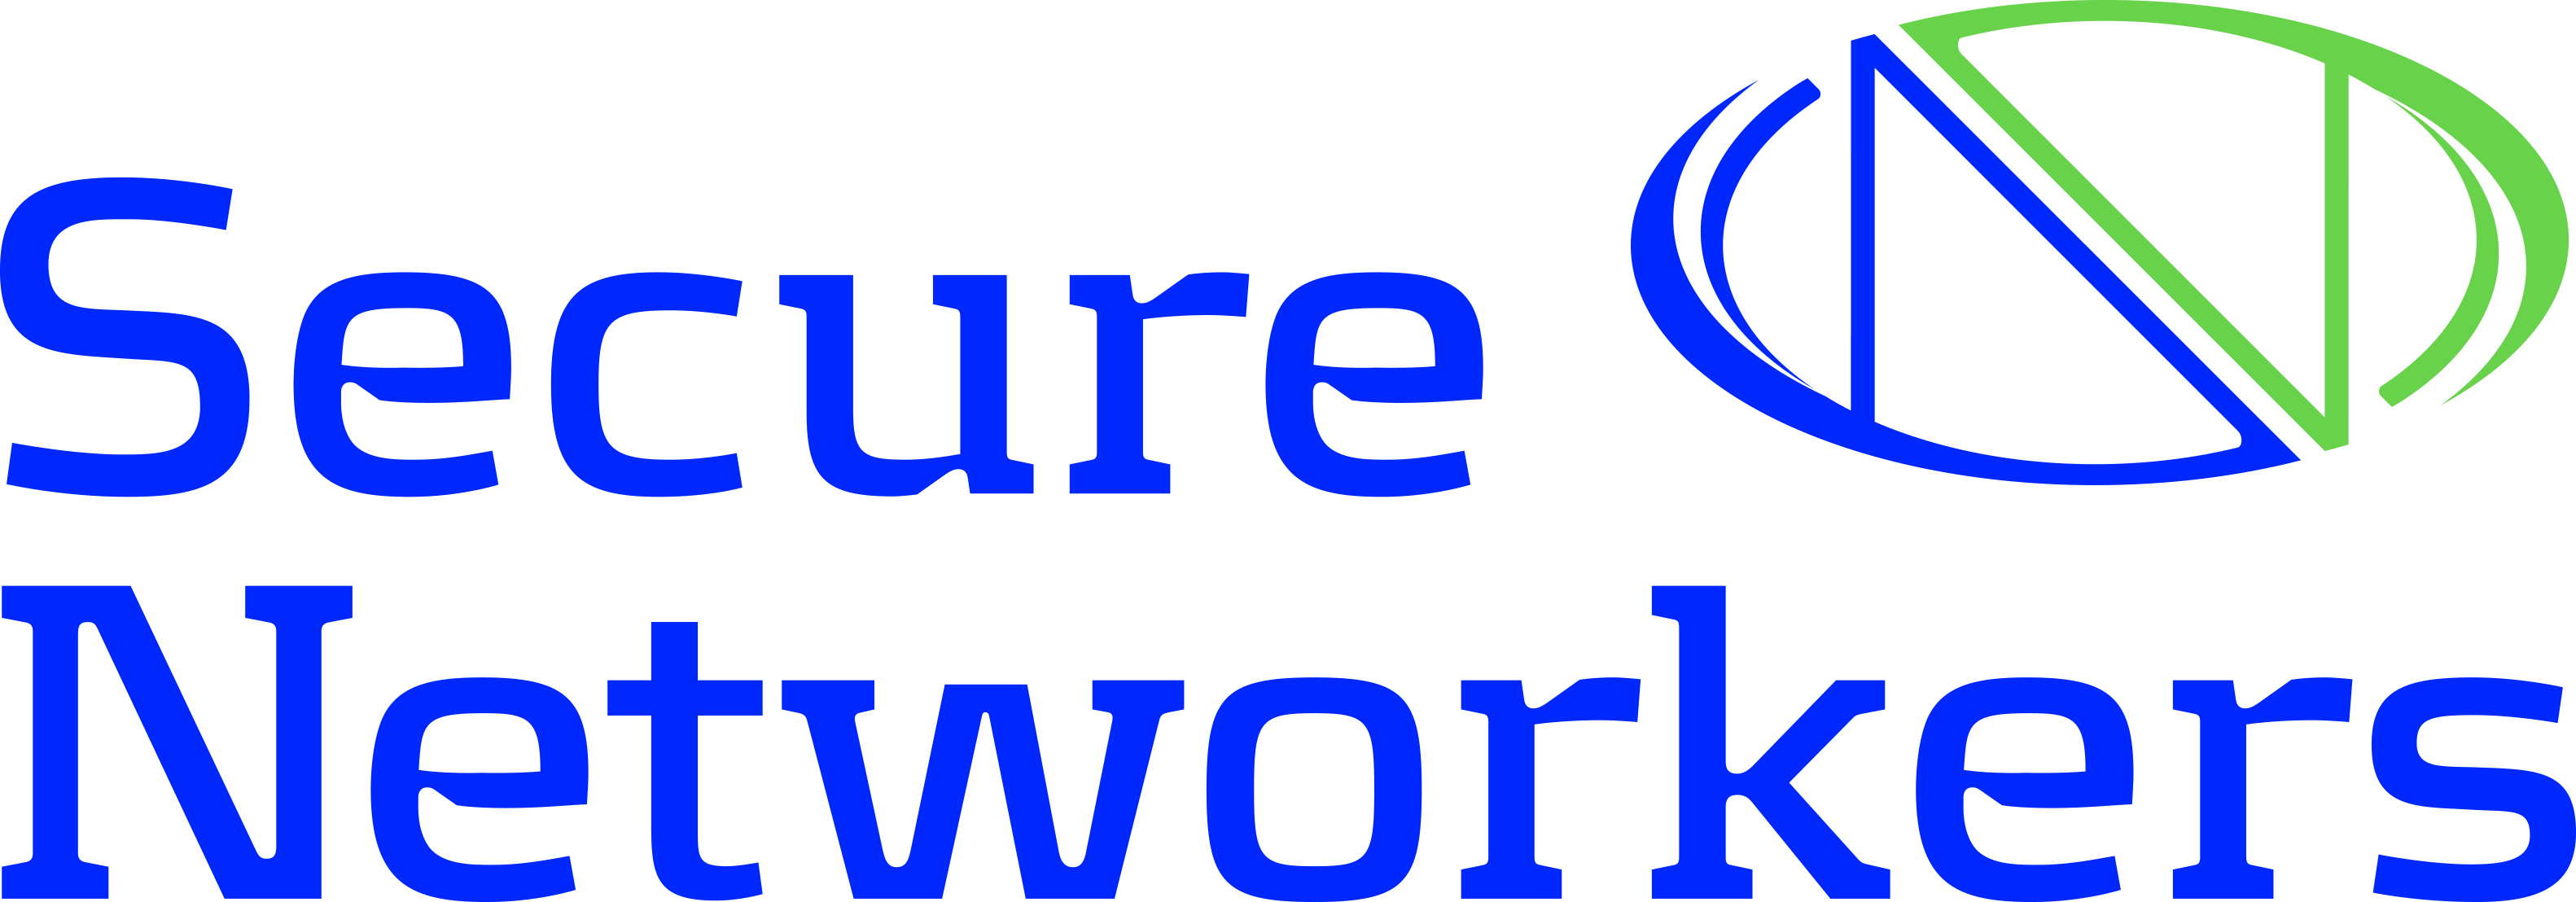 Secure Networks Logo 66cc33